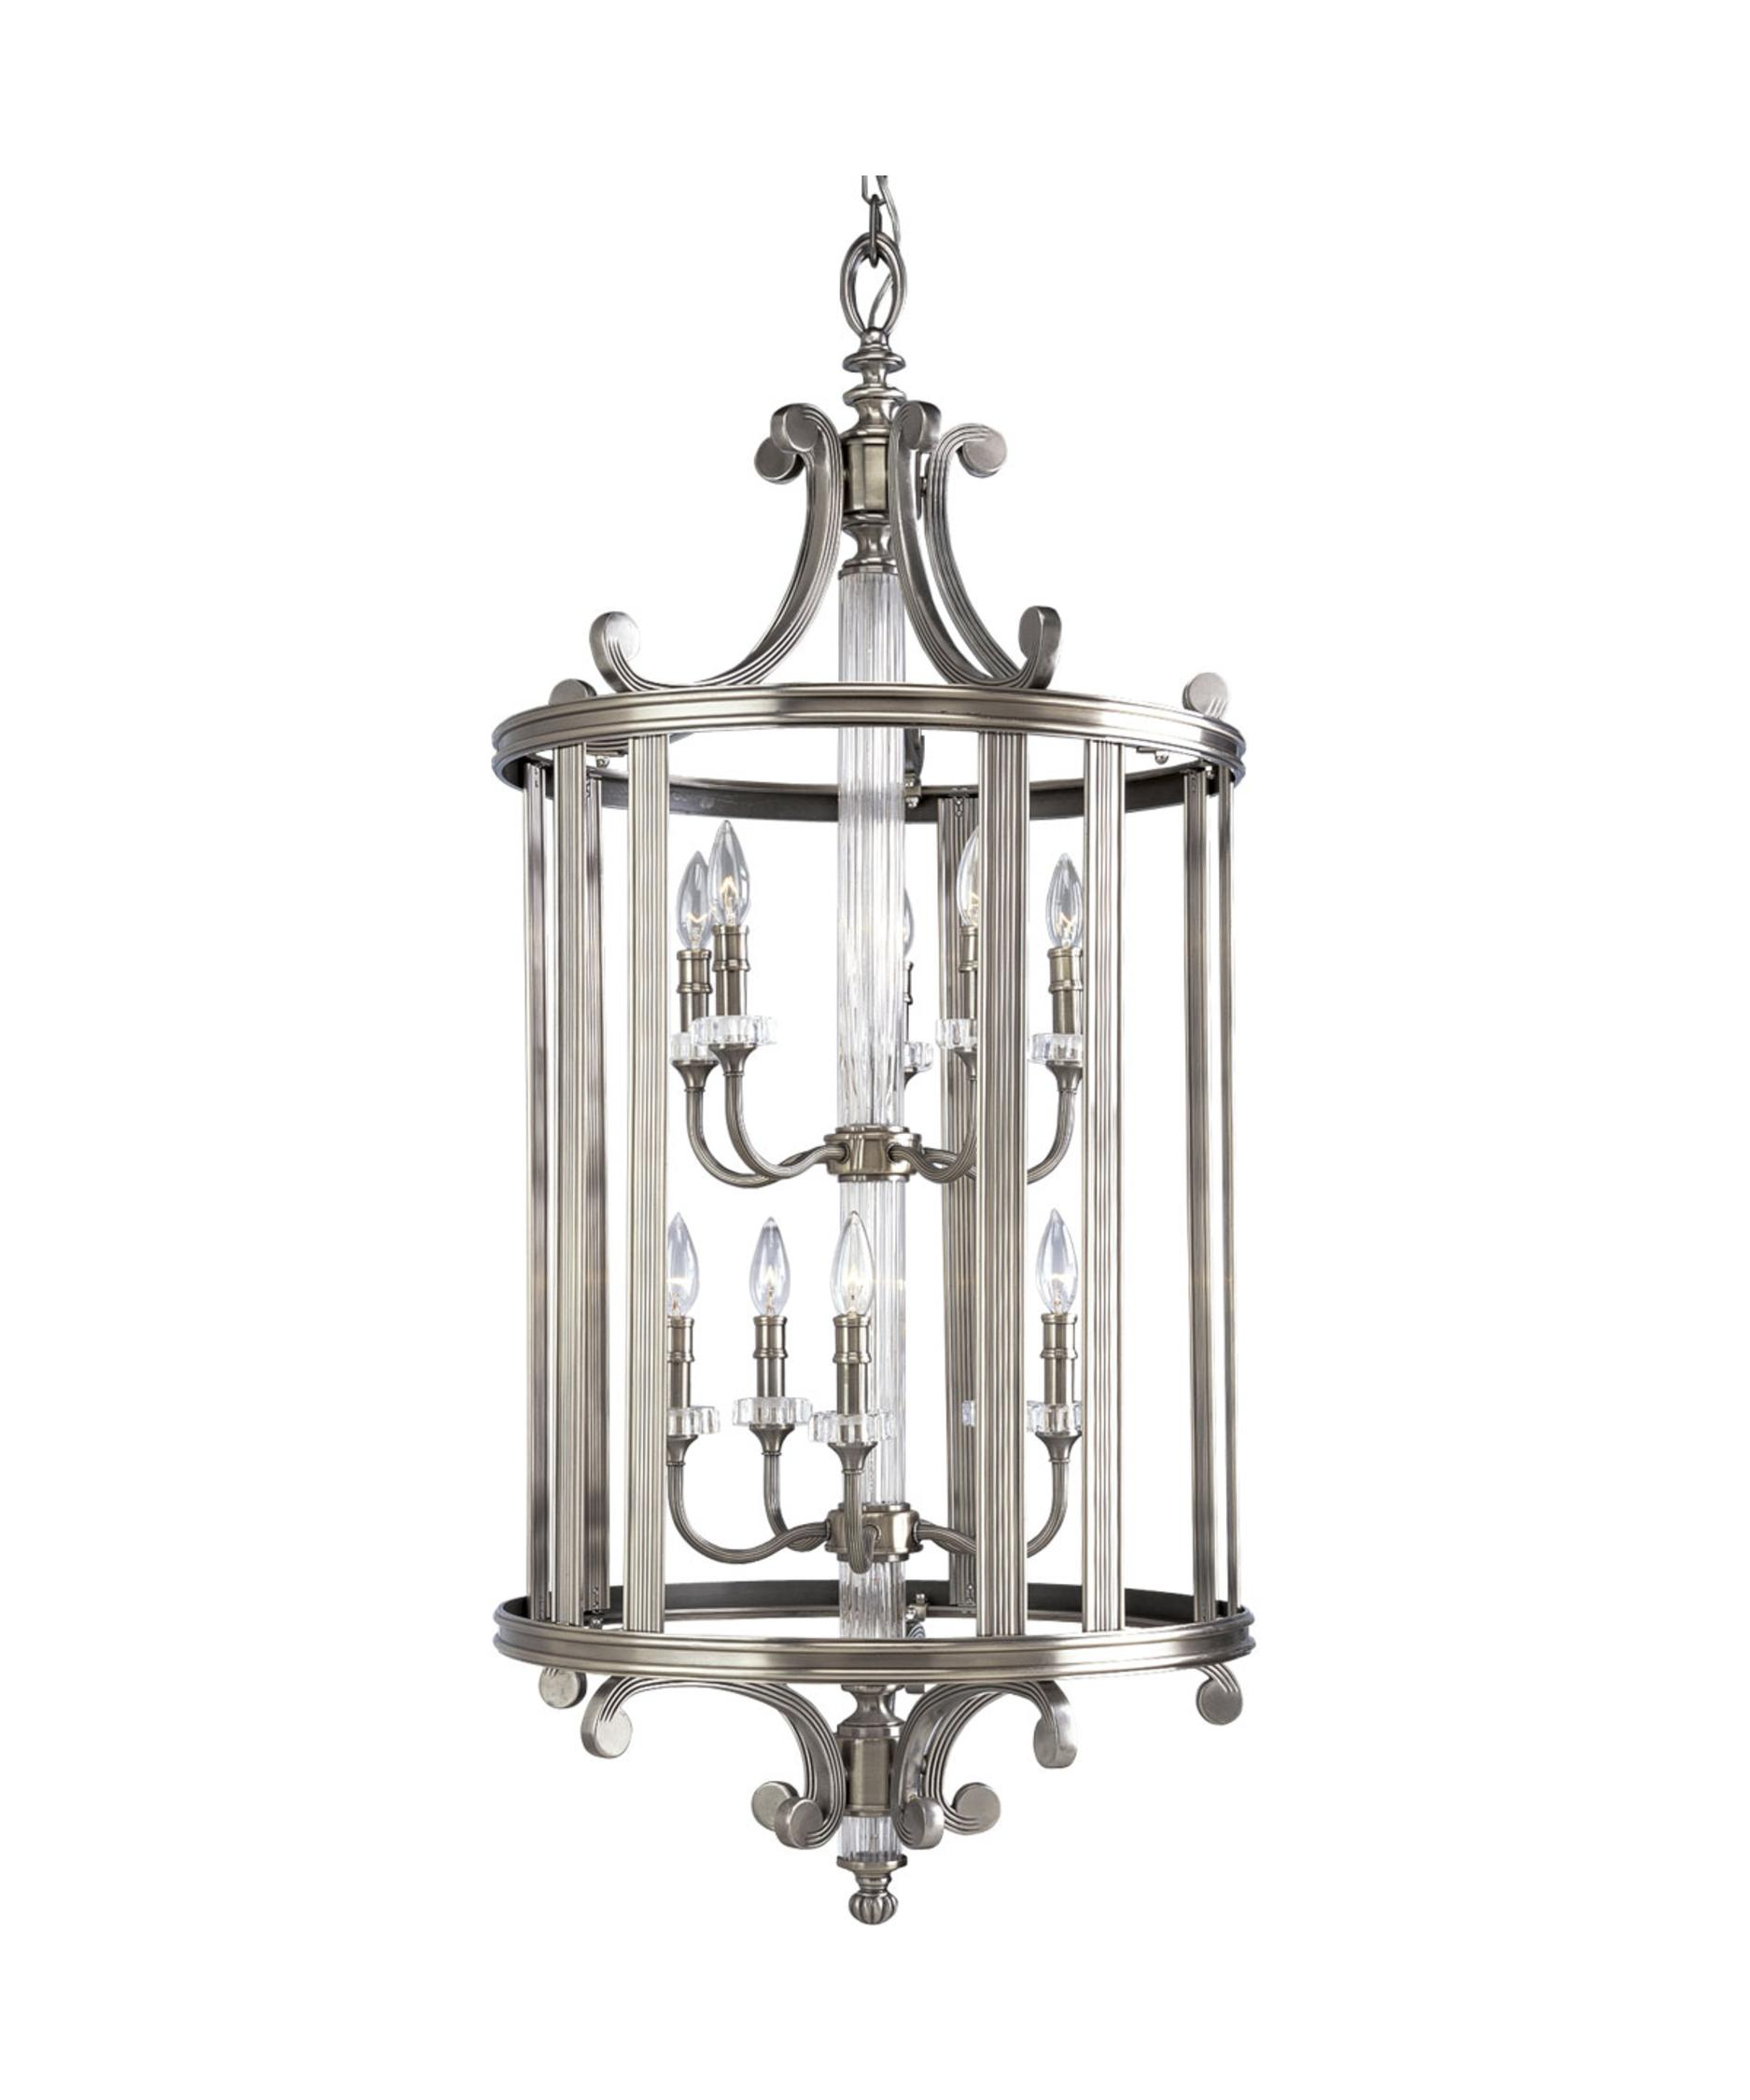 Thomasville lighting roxbury 22 inch foyer pendant for Thomasville lights